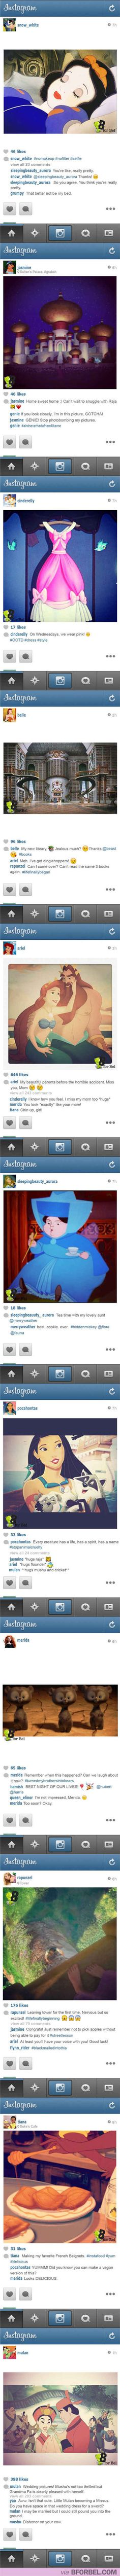 If Disney Princesses Had Instagram, The World Would Be A Better Place